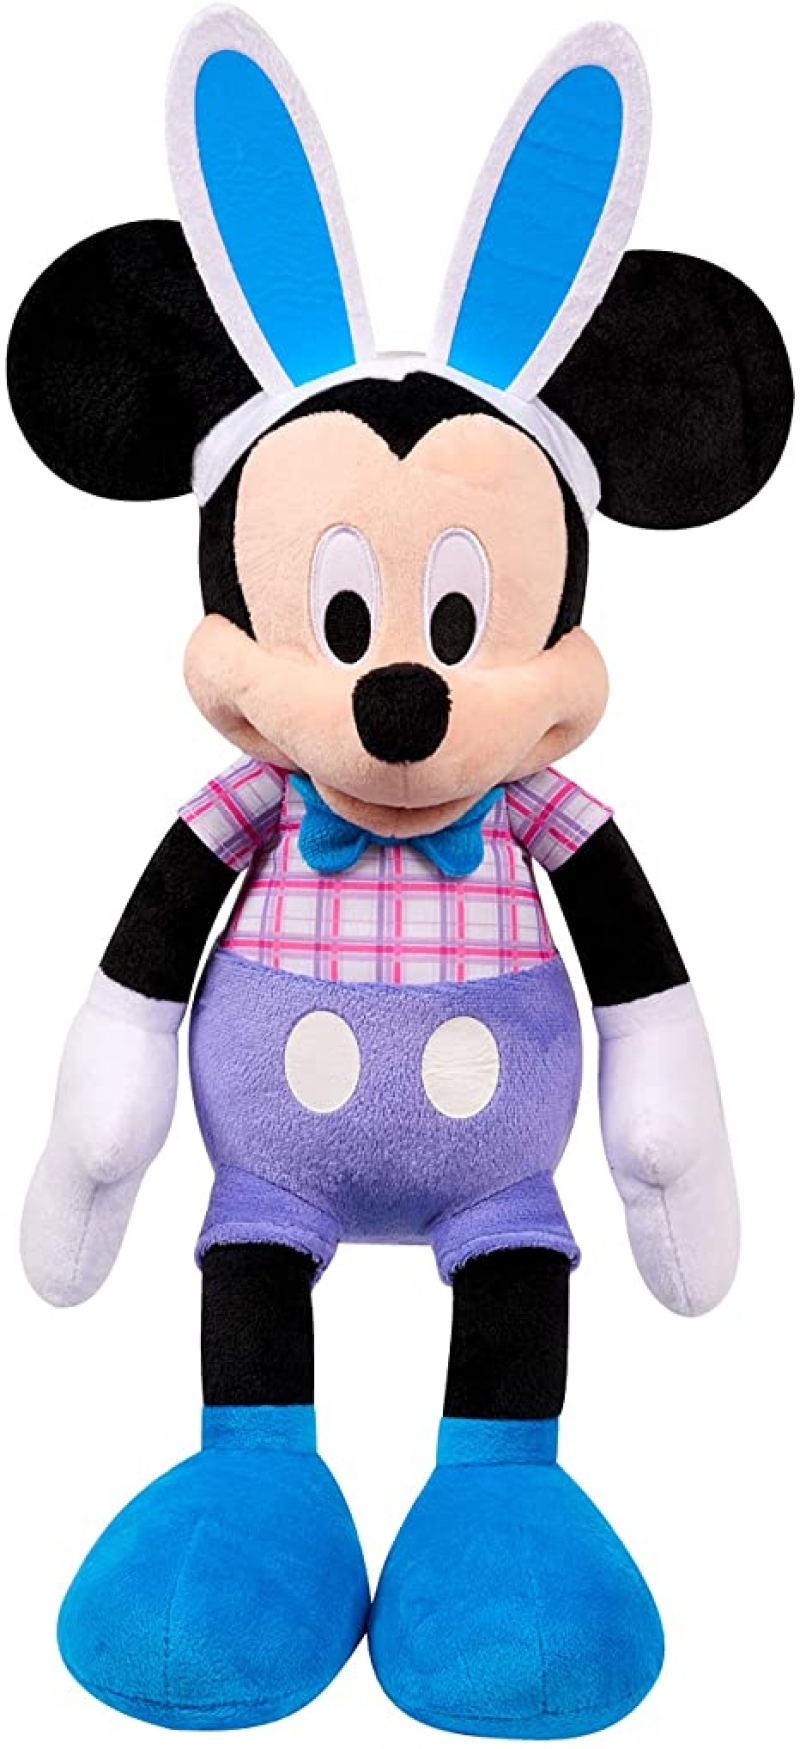 ihocon: Disney Easter 19-Inch Mickey Mouse Large Plush, Amazon Exclusive 迪士尼復活節米老鼠玩偶